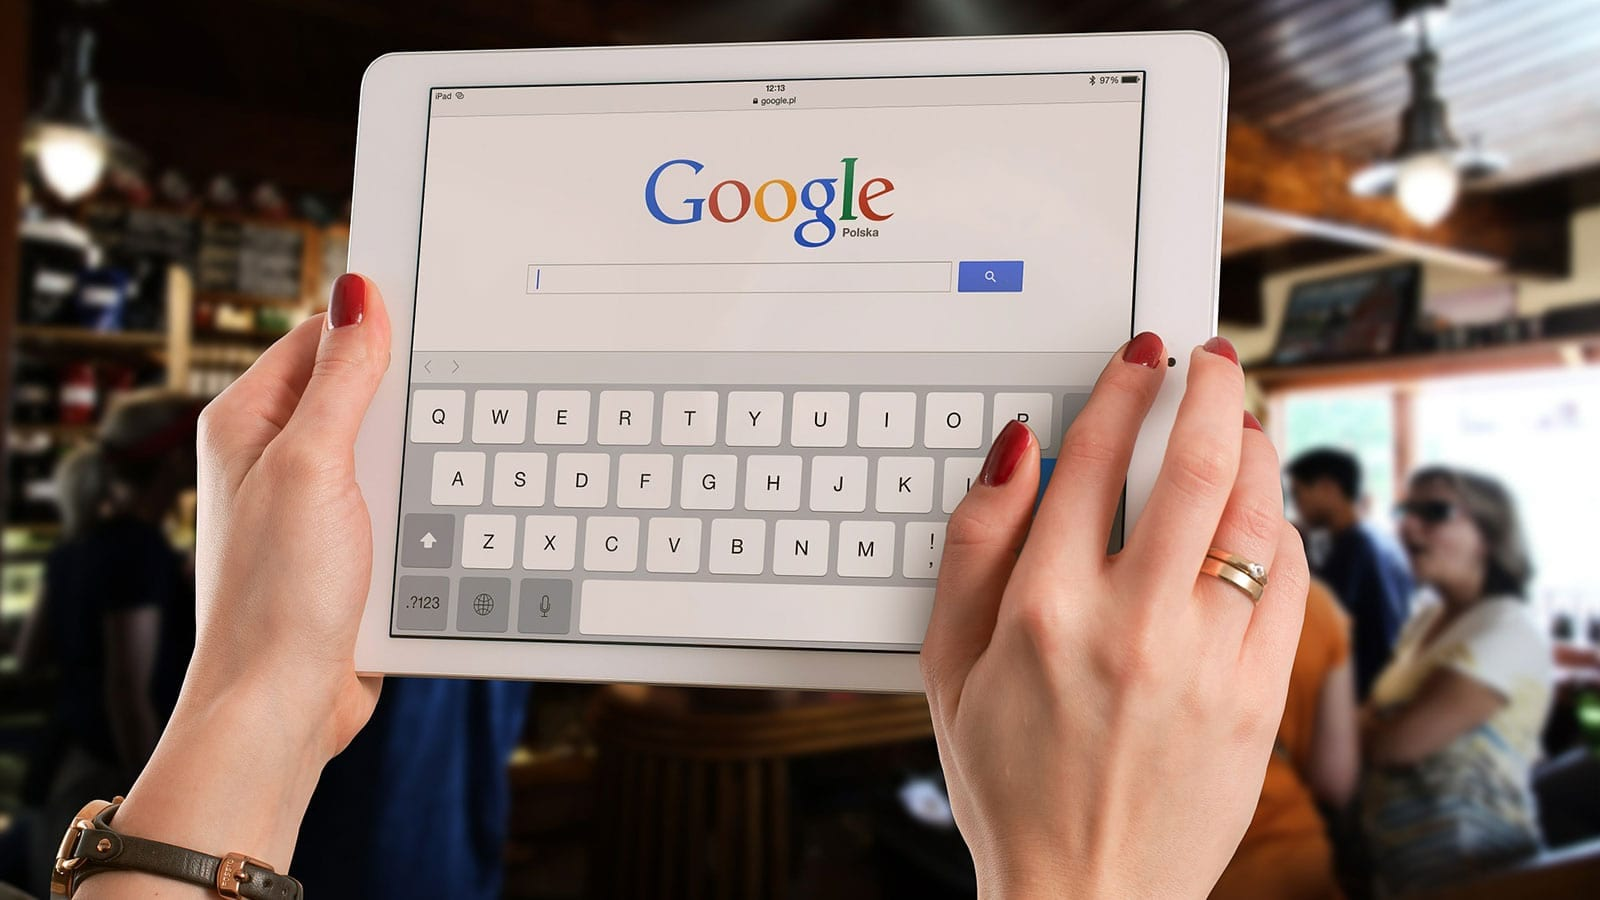 Don't Let Just Anyone Manage Your AdWords! Get a Google Partner!